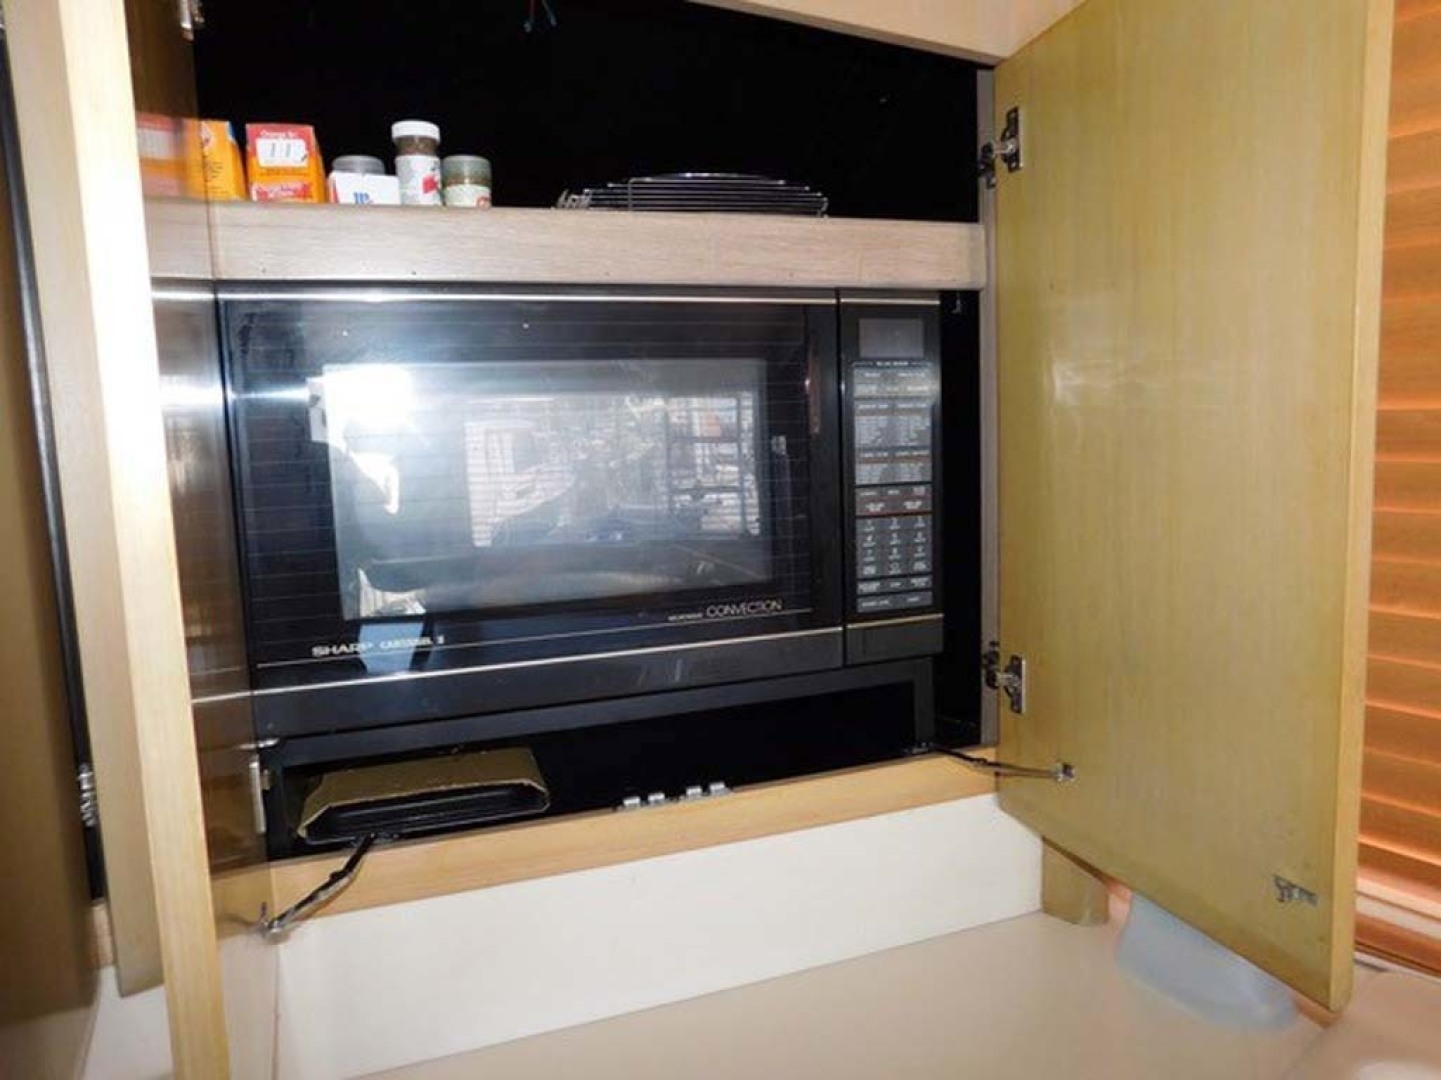 Hatteras-Convertible 1986-My Alyby Merritt Island-Florida-United States-Microwave and Convection Oven-1294824 | Thumbnail